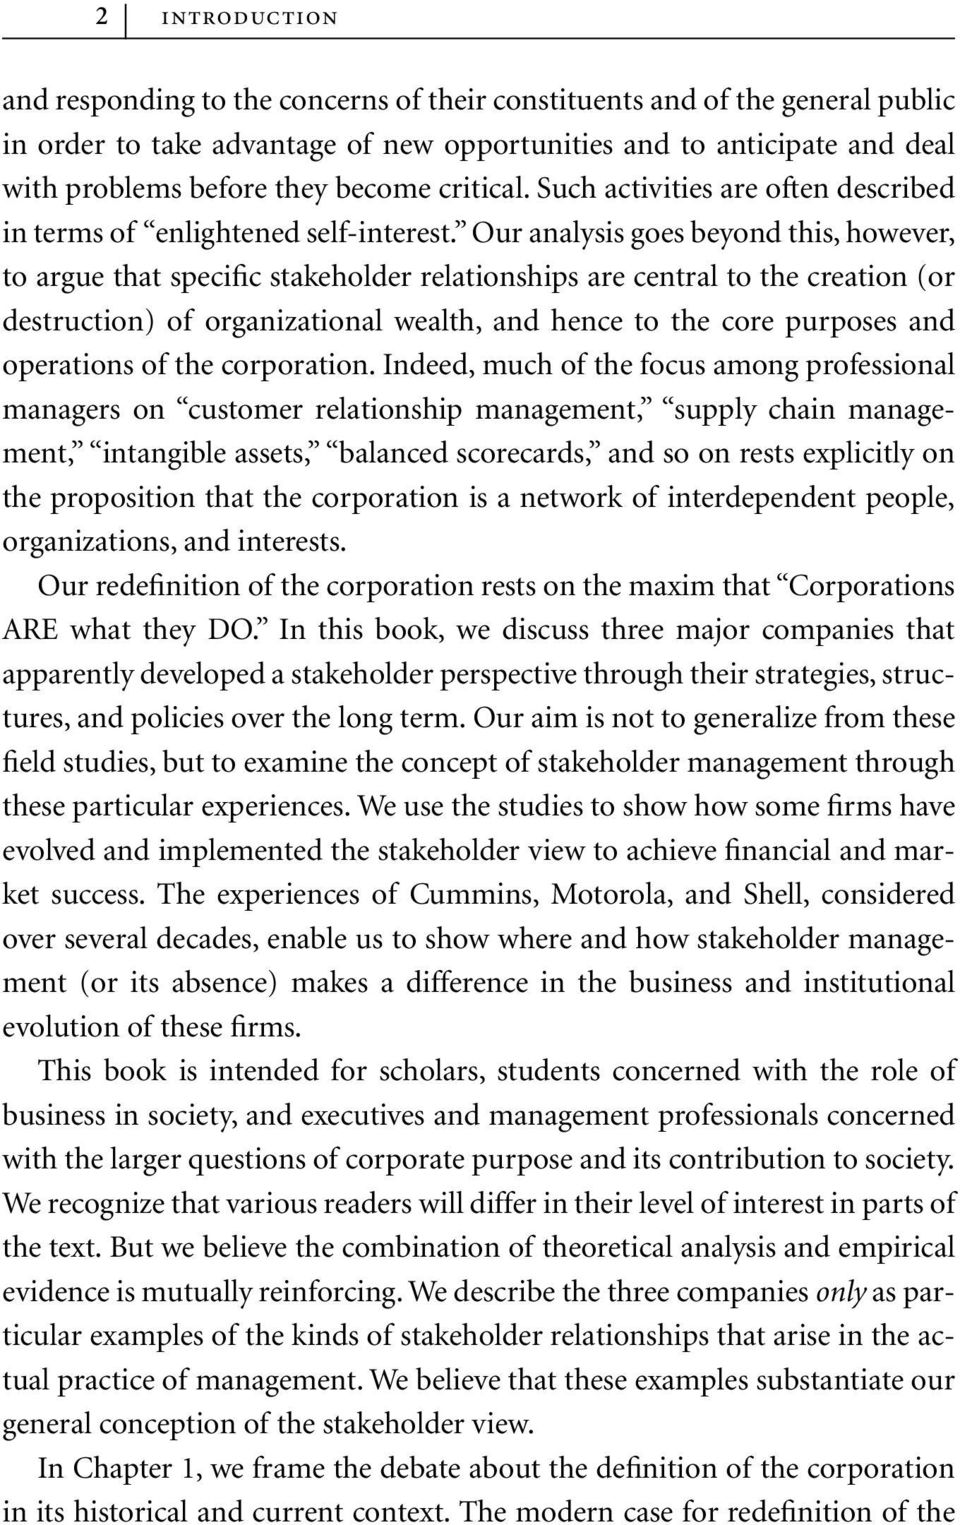 Our analysis goes beyond this, however, to argue that specific stakeholder relationships are central to the creation (or destruction) of organizational wealth, and hence to the core purposes and